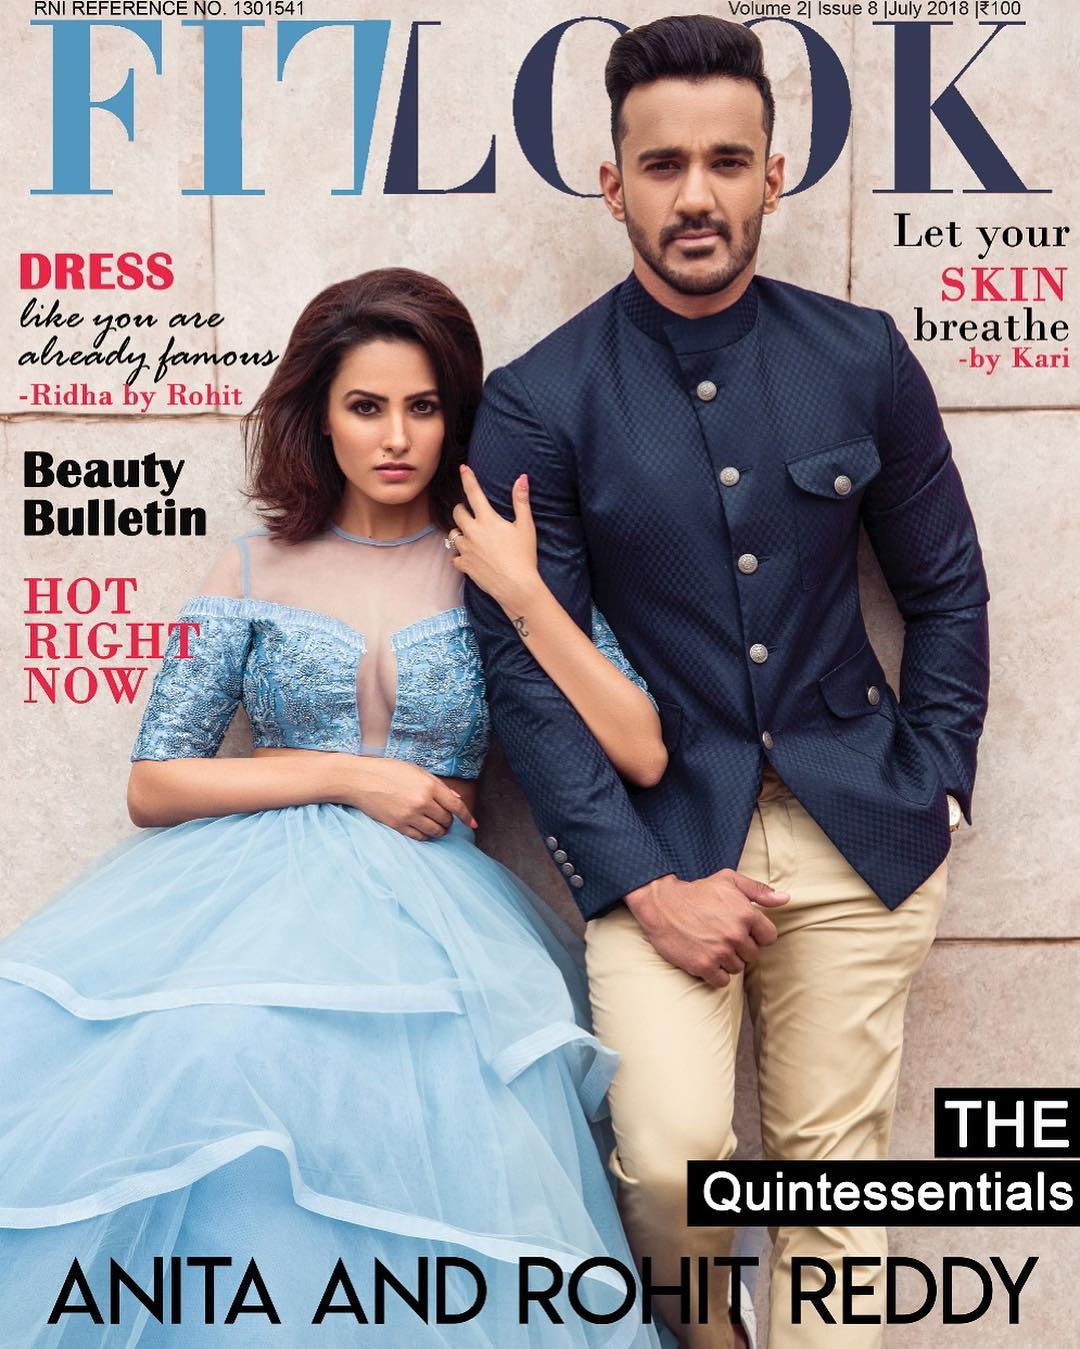 The Quintessentials Anita And Rohit Reddy Grace The Cover Of Fitlook Magazine